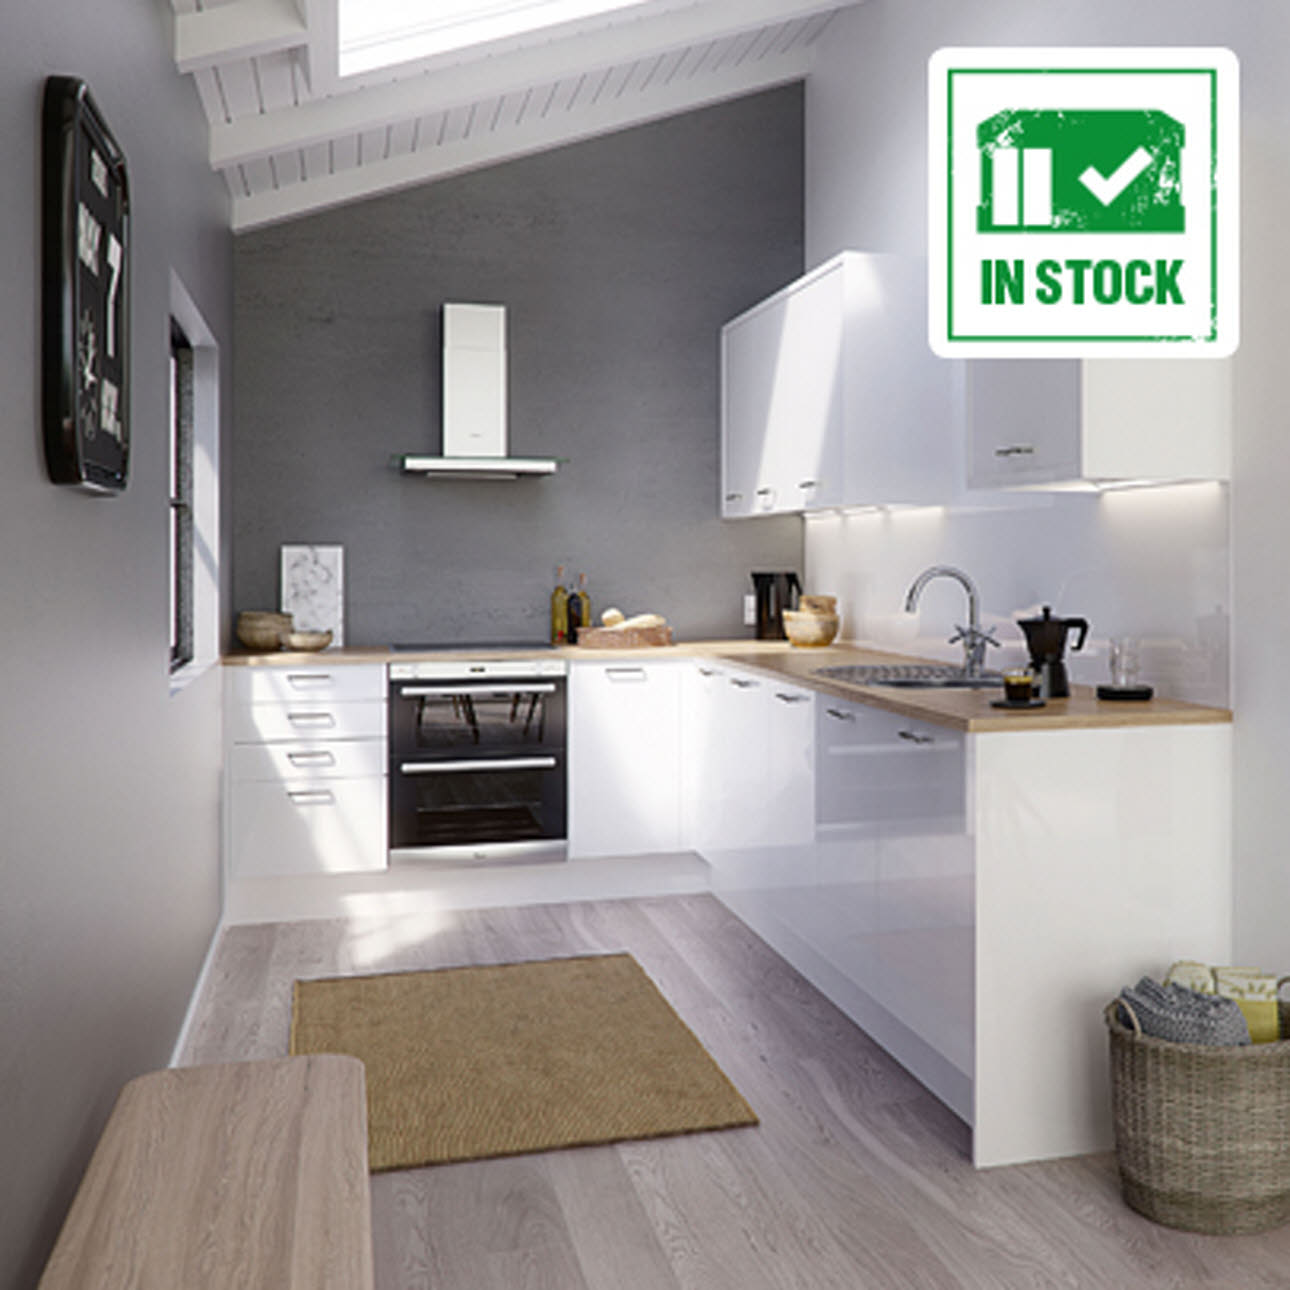 Strata Gloss White Kitchen, in stock